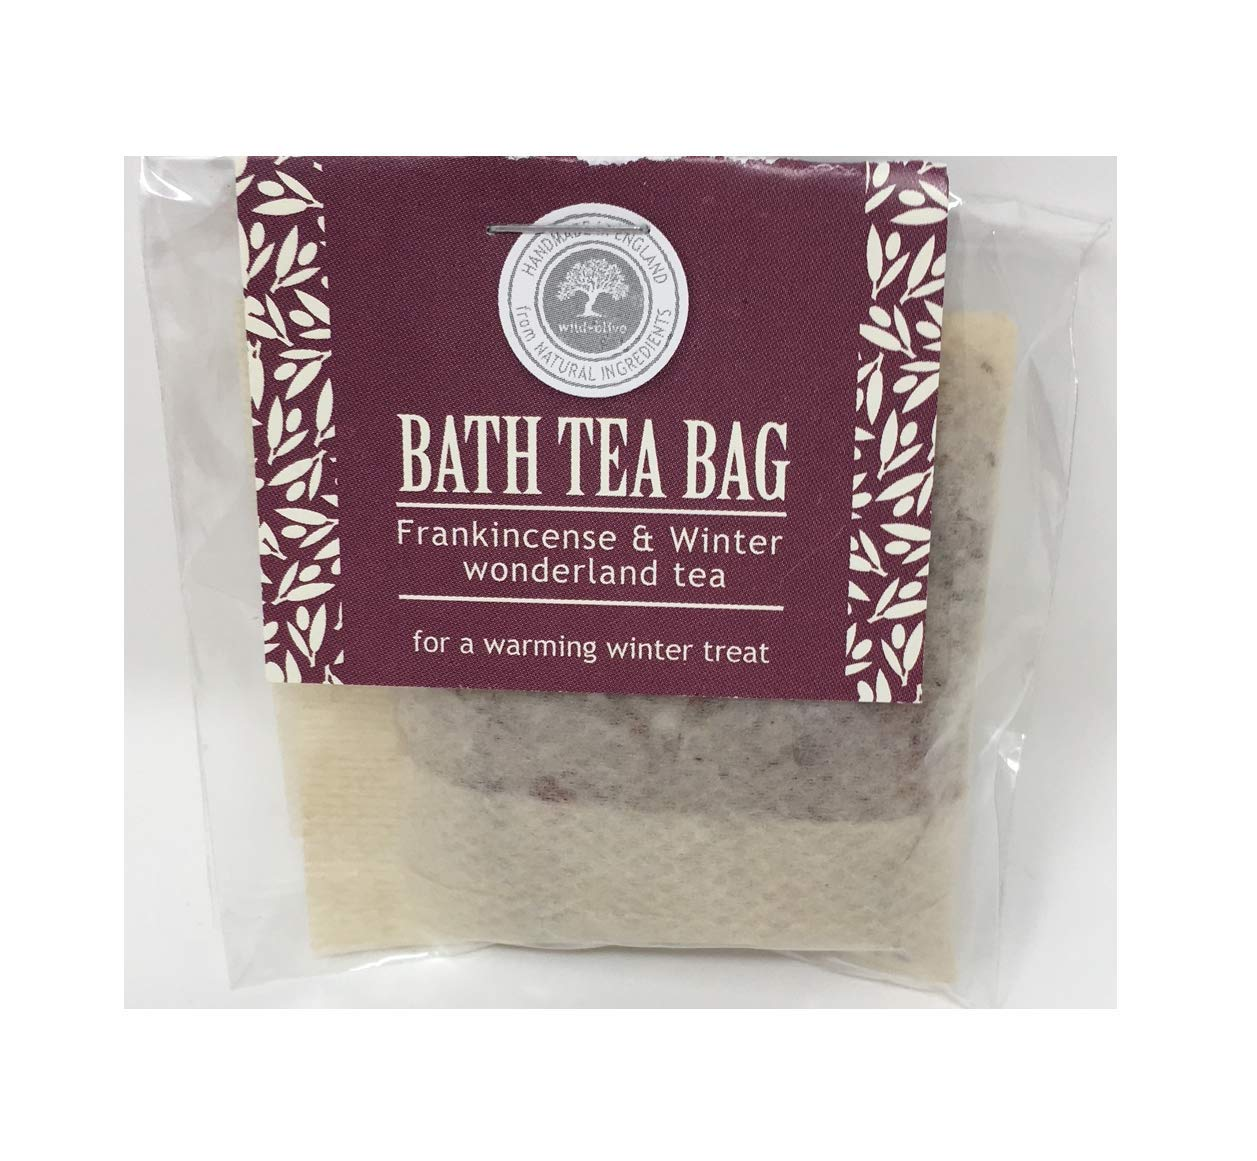 Frankincense and Winter Wonderland Tea Festive Bath Tea Bag Wild Olive